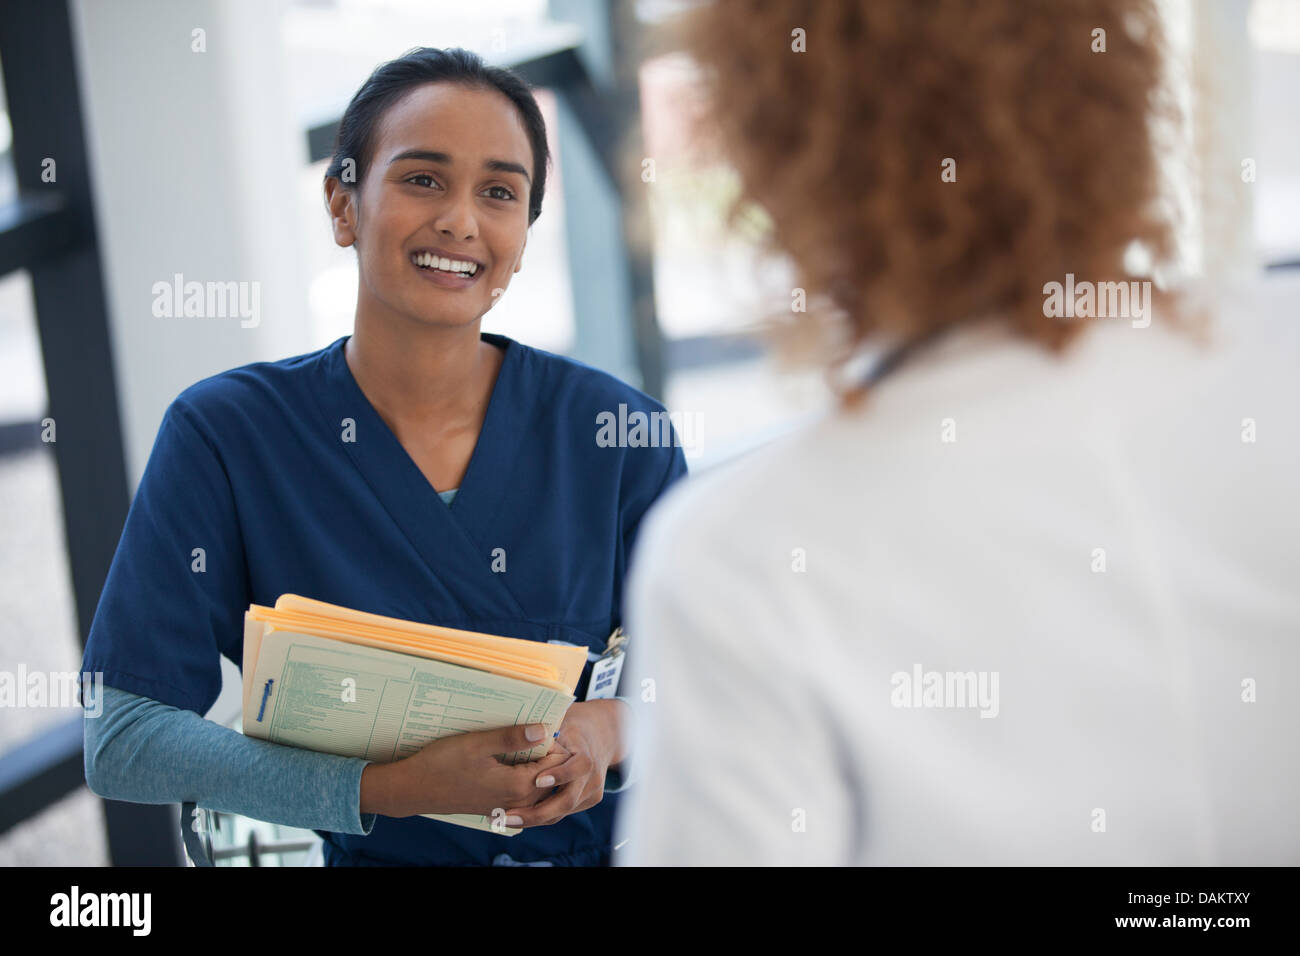 Nurse and doctor talking in hospital - Stock Image